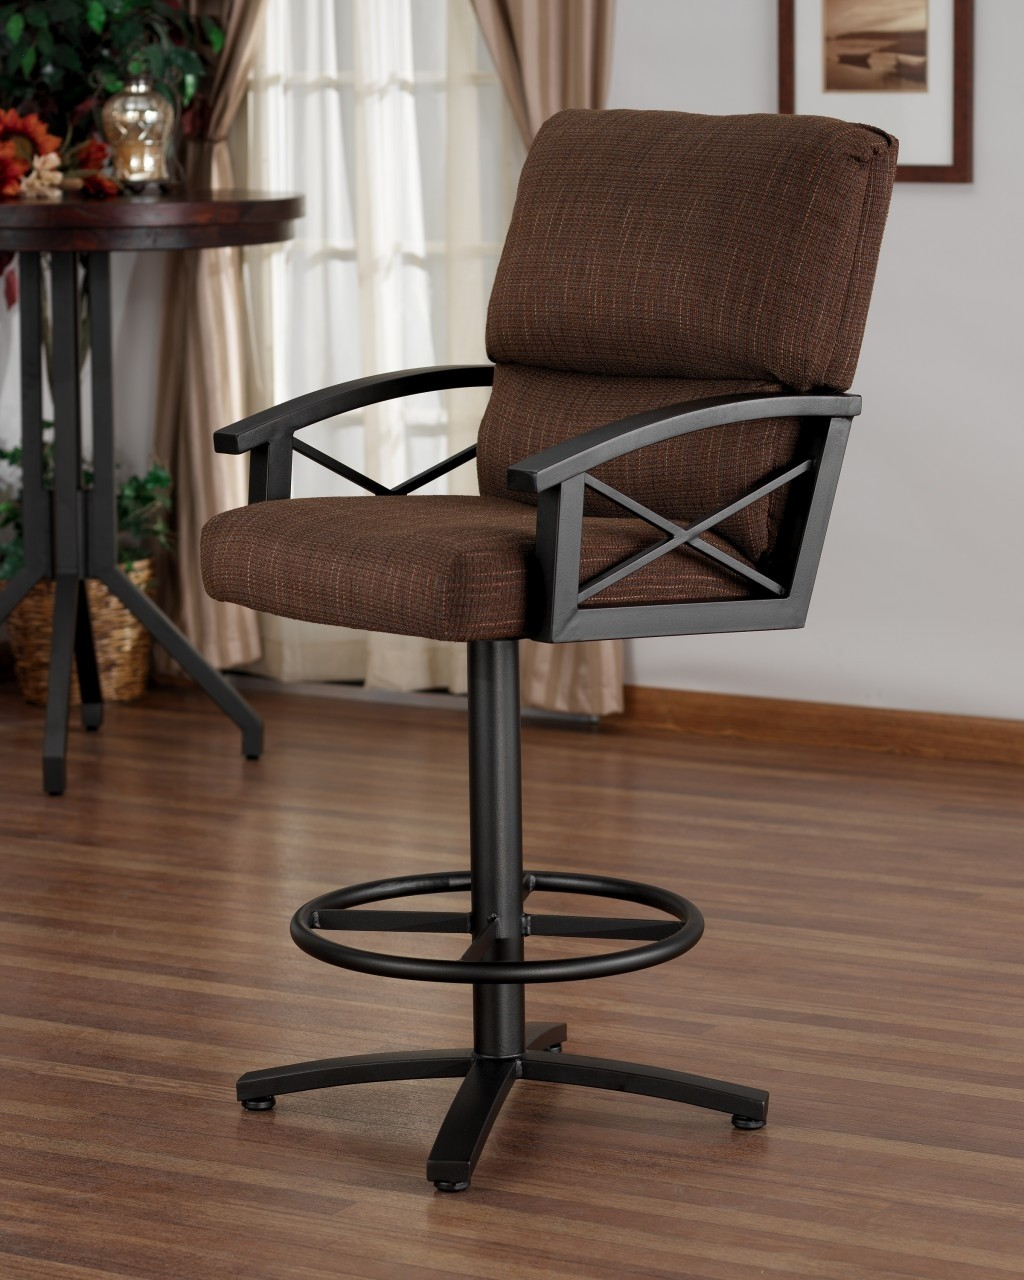 Charmant Swivel Bar Stools With Arms 1